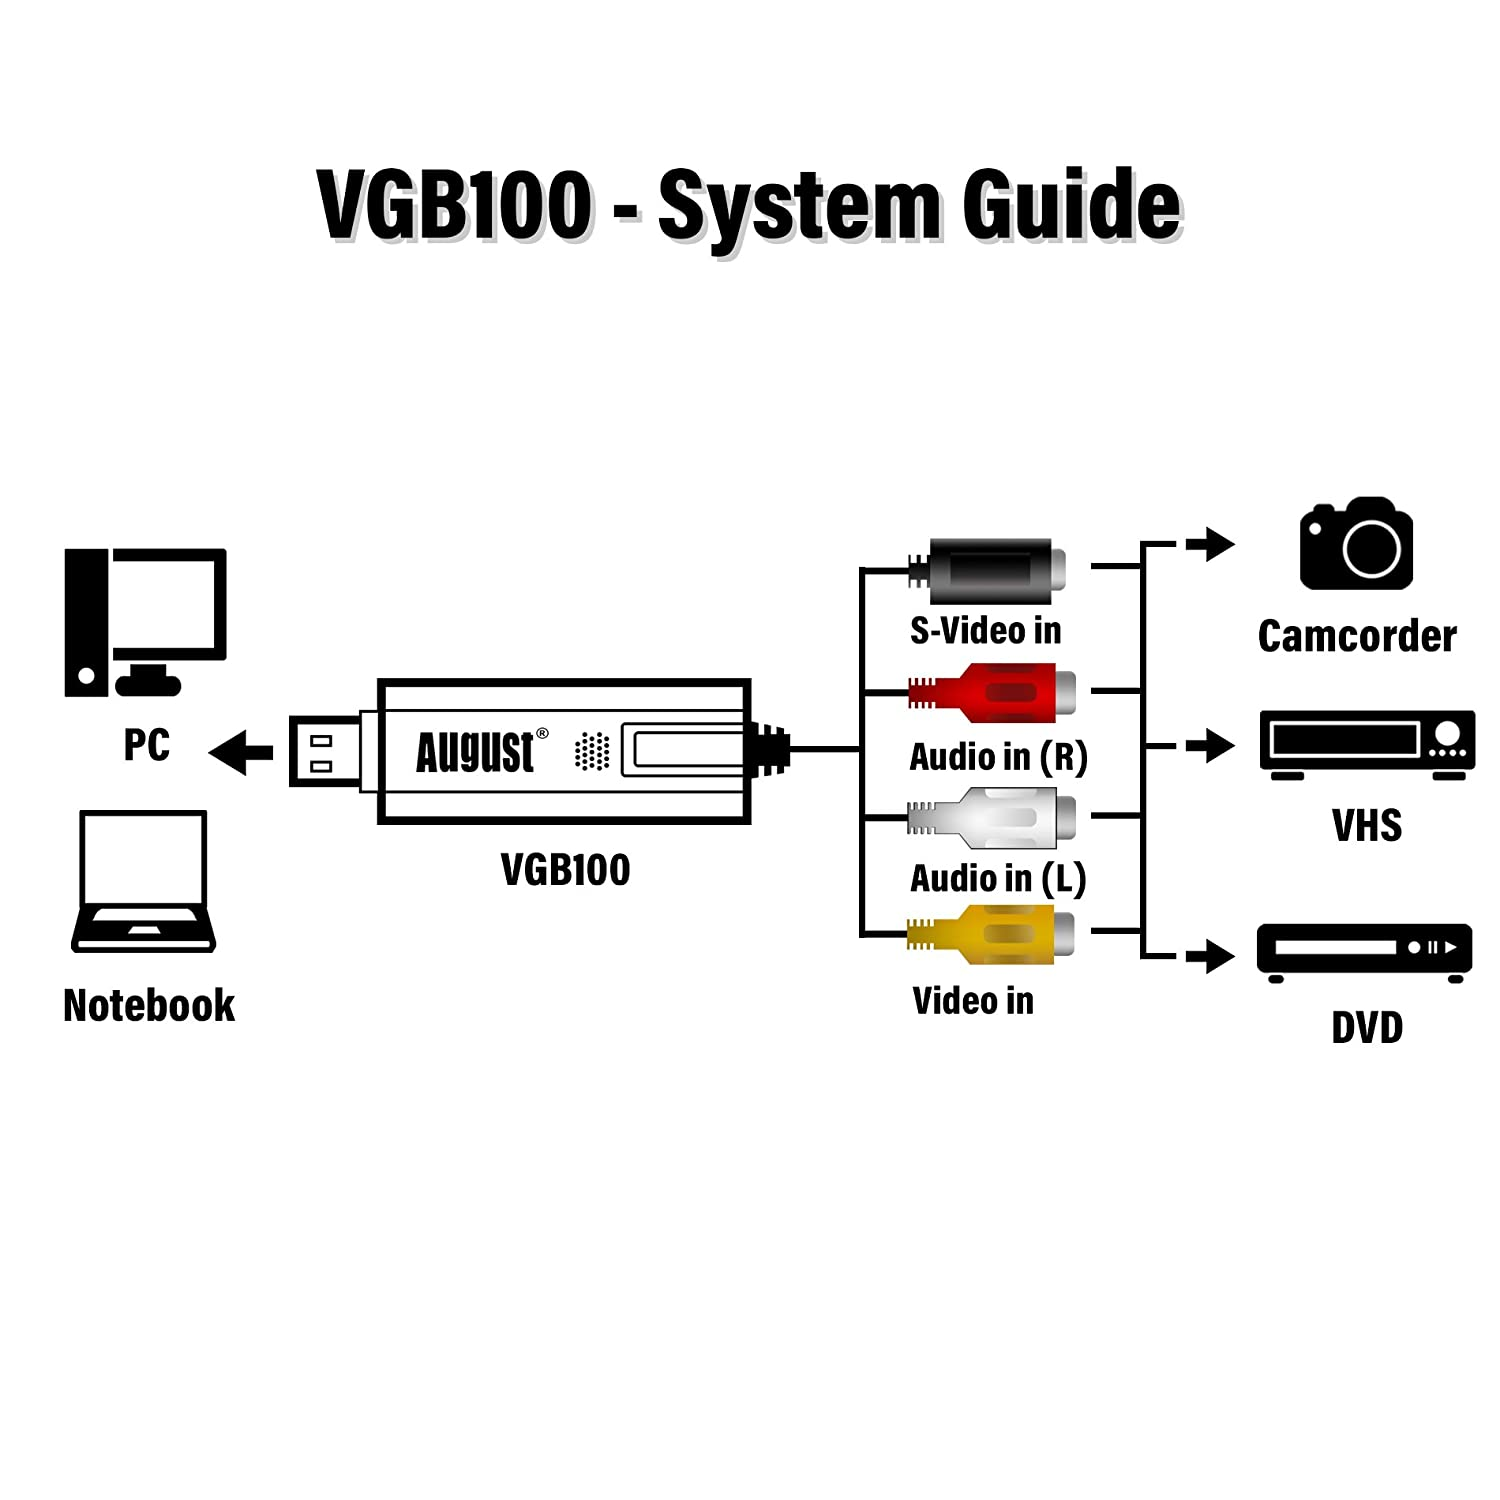 External Usb Video Capture Card August Vgb100 Transfer Vhs Home Dvr Block Diagram 3d Printer Projector Videos To Pc Xbox 360 And Ps3 Gameplay S Composite In